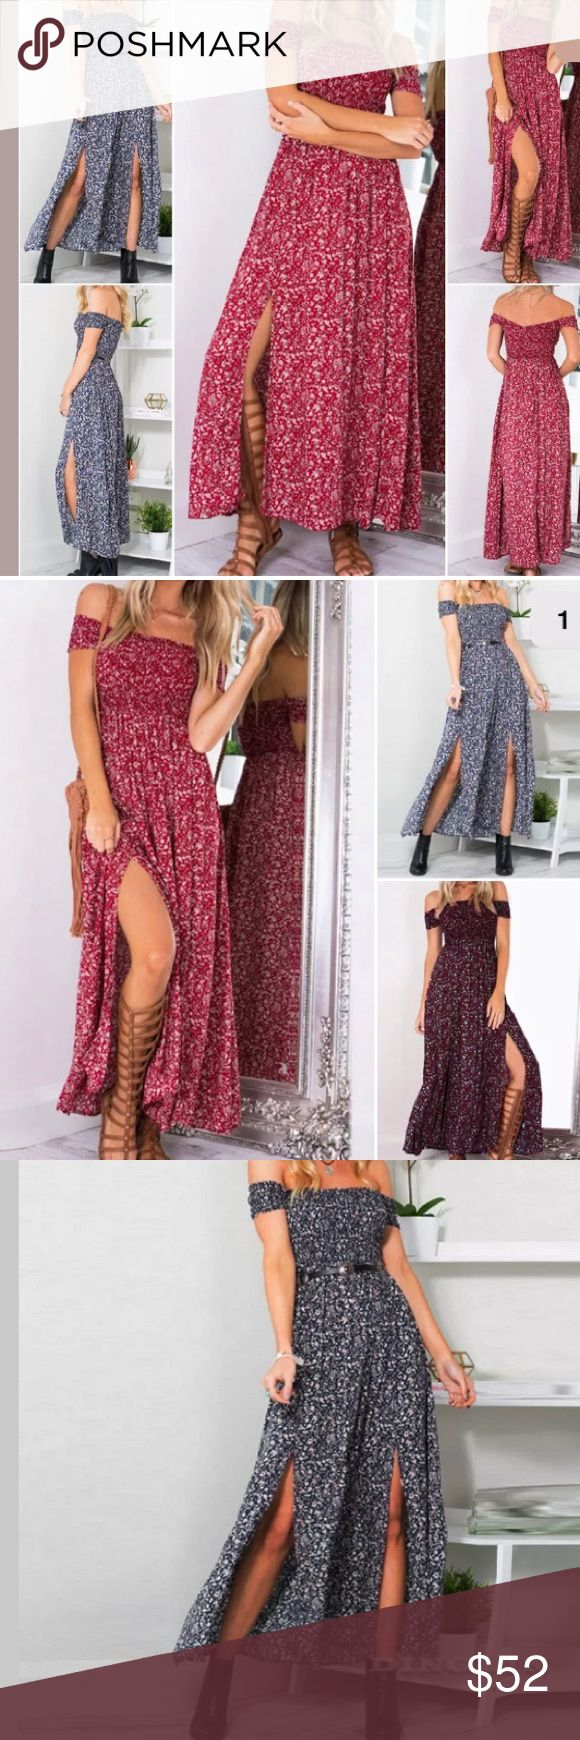 🎉 COMING SOON  IN BLUE 🎉 💕 Coming soon 💕 Blue floral off the shoulder sun dress. Flattering empire waist. Slits on either side of front of dress. Perfect beach dress or with your favorite cowgirl boots 😇 Dresses Maxi